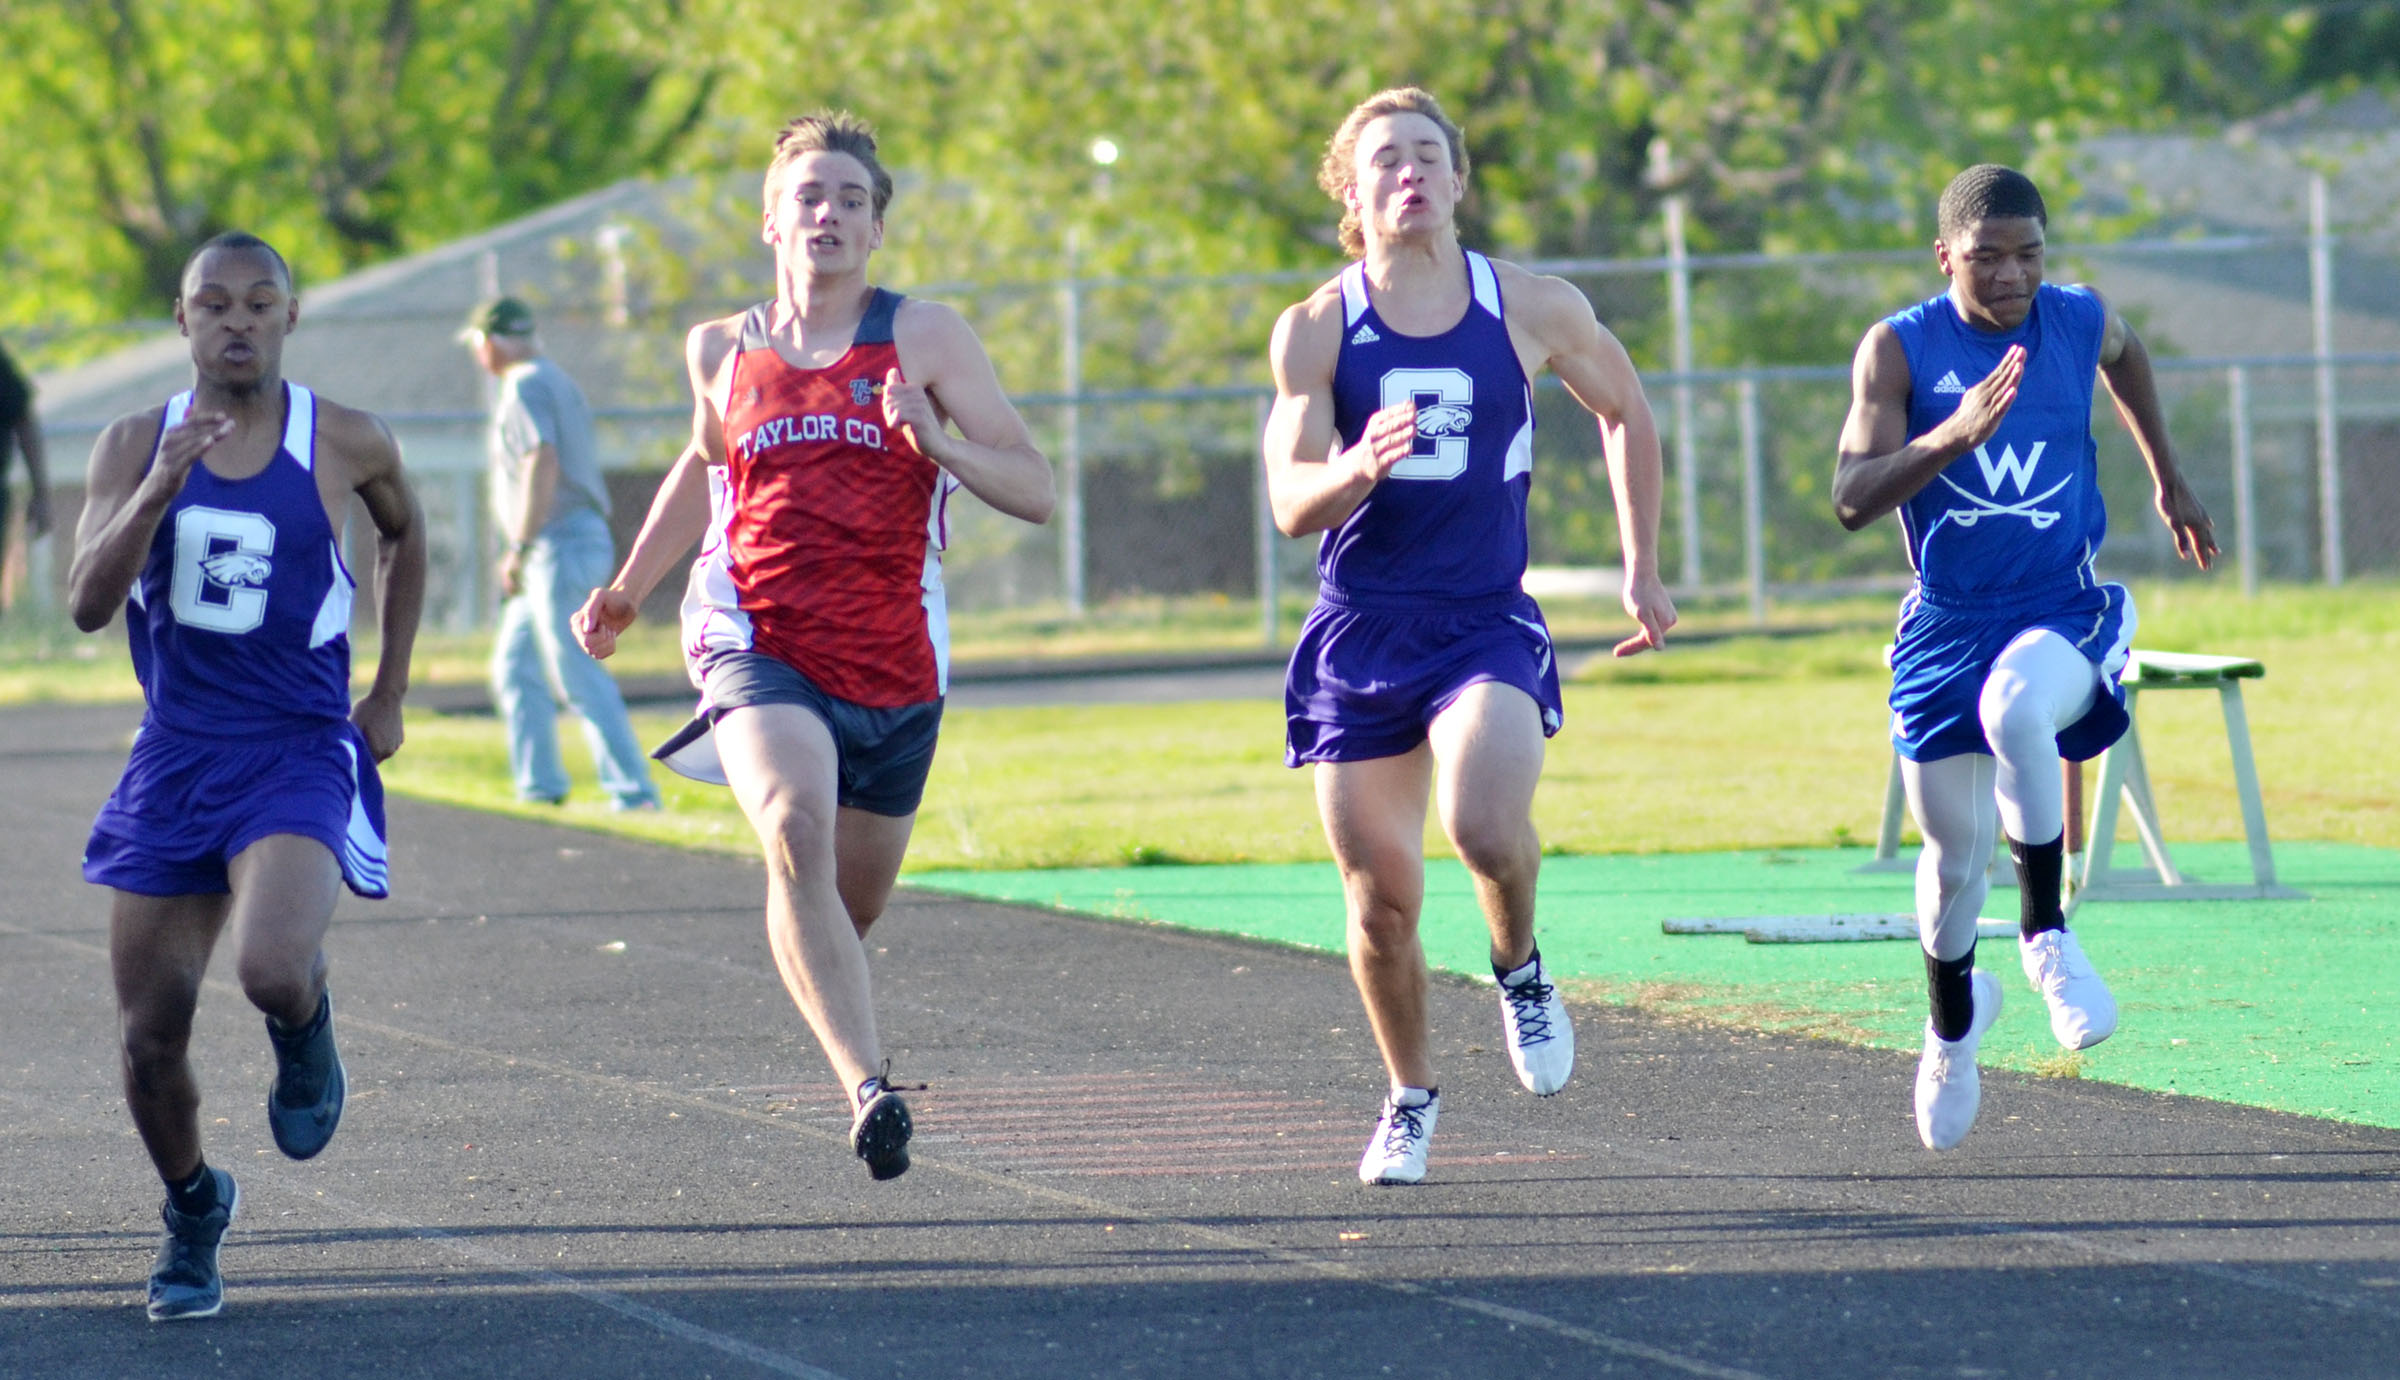 CHS sophomore Daesean Vancleave, at left, and, third from left, classmate Tristan Johnson run the 100-meter dash.